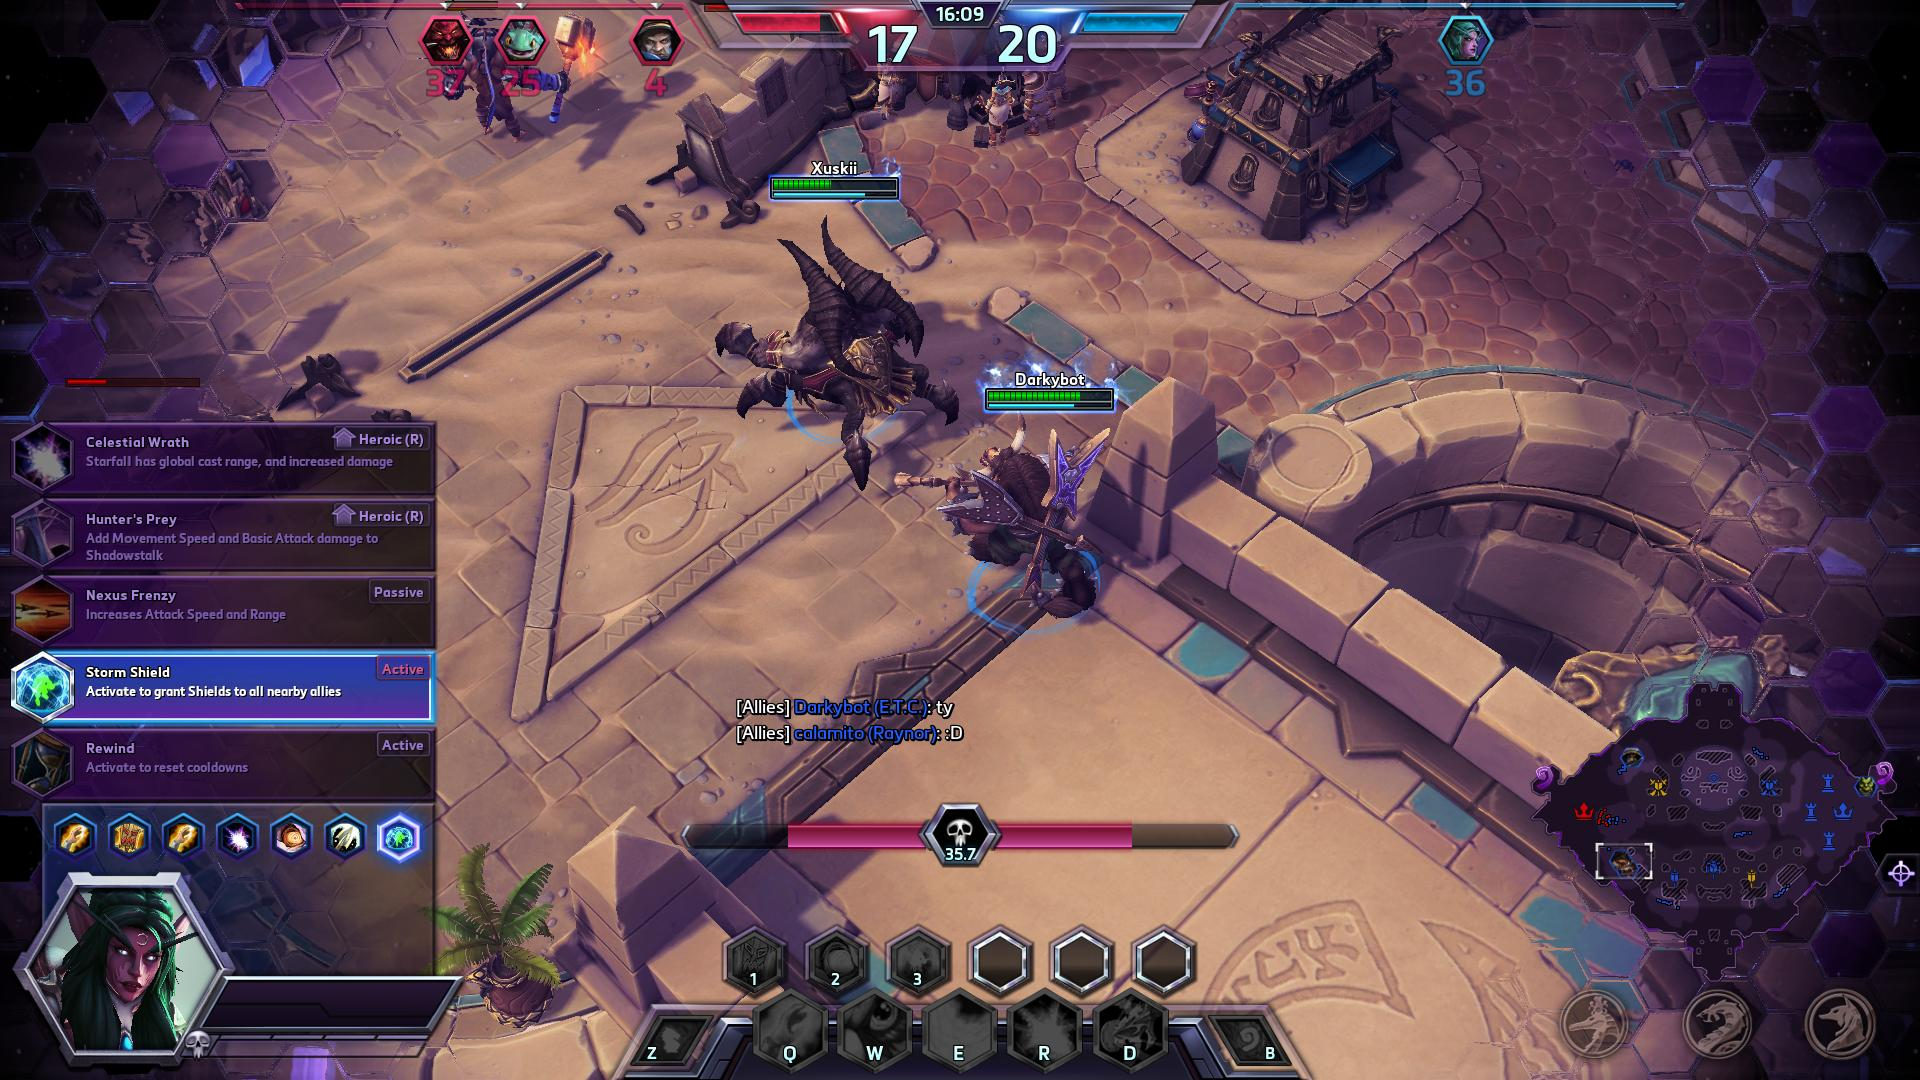 Heroes of the Storm Review